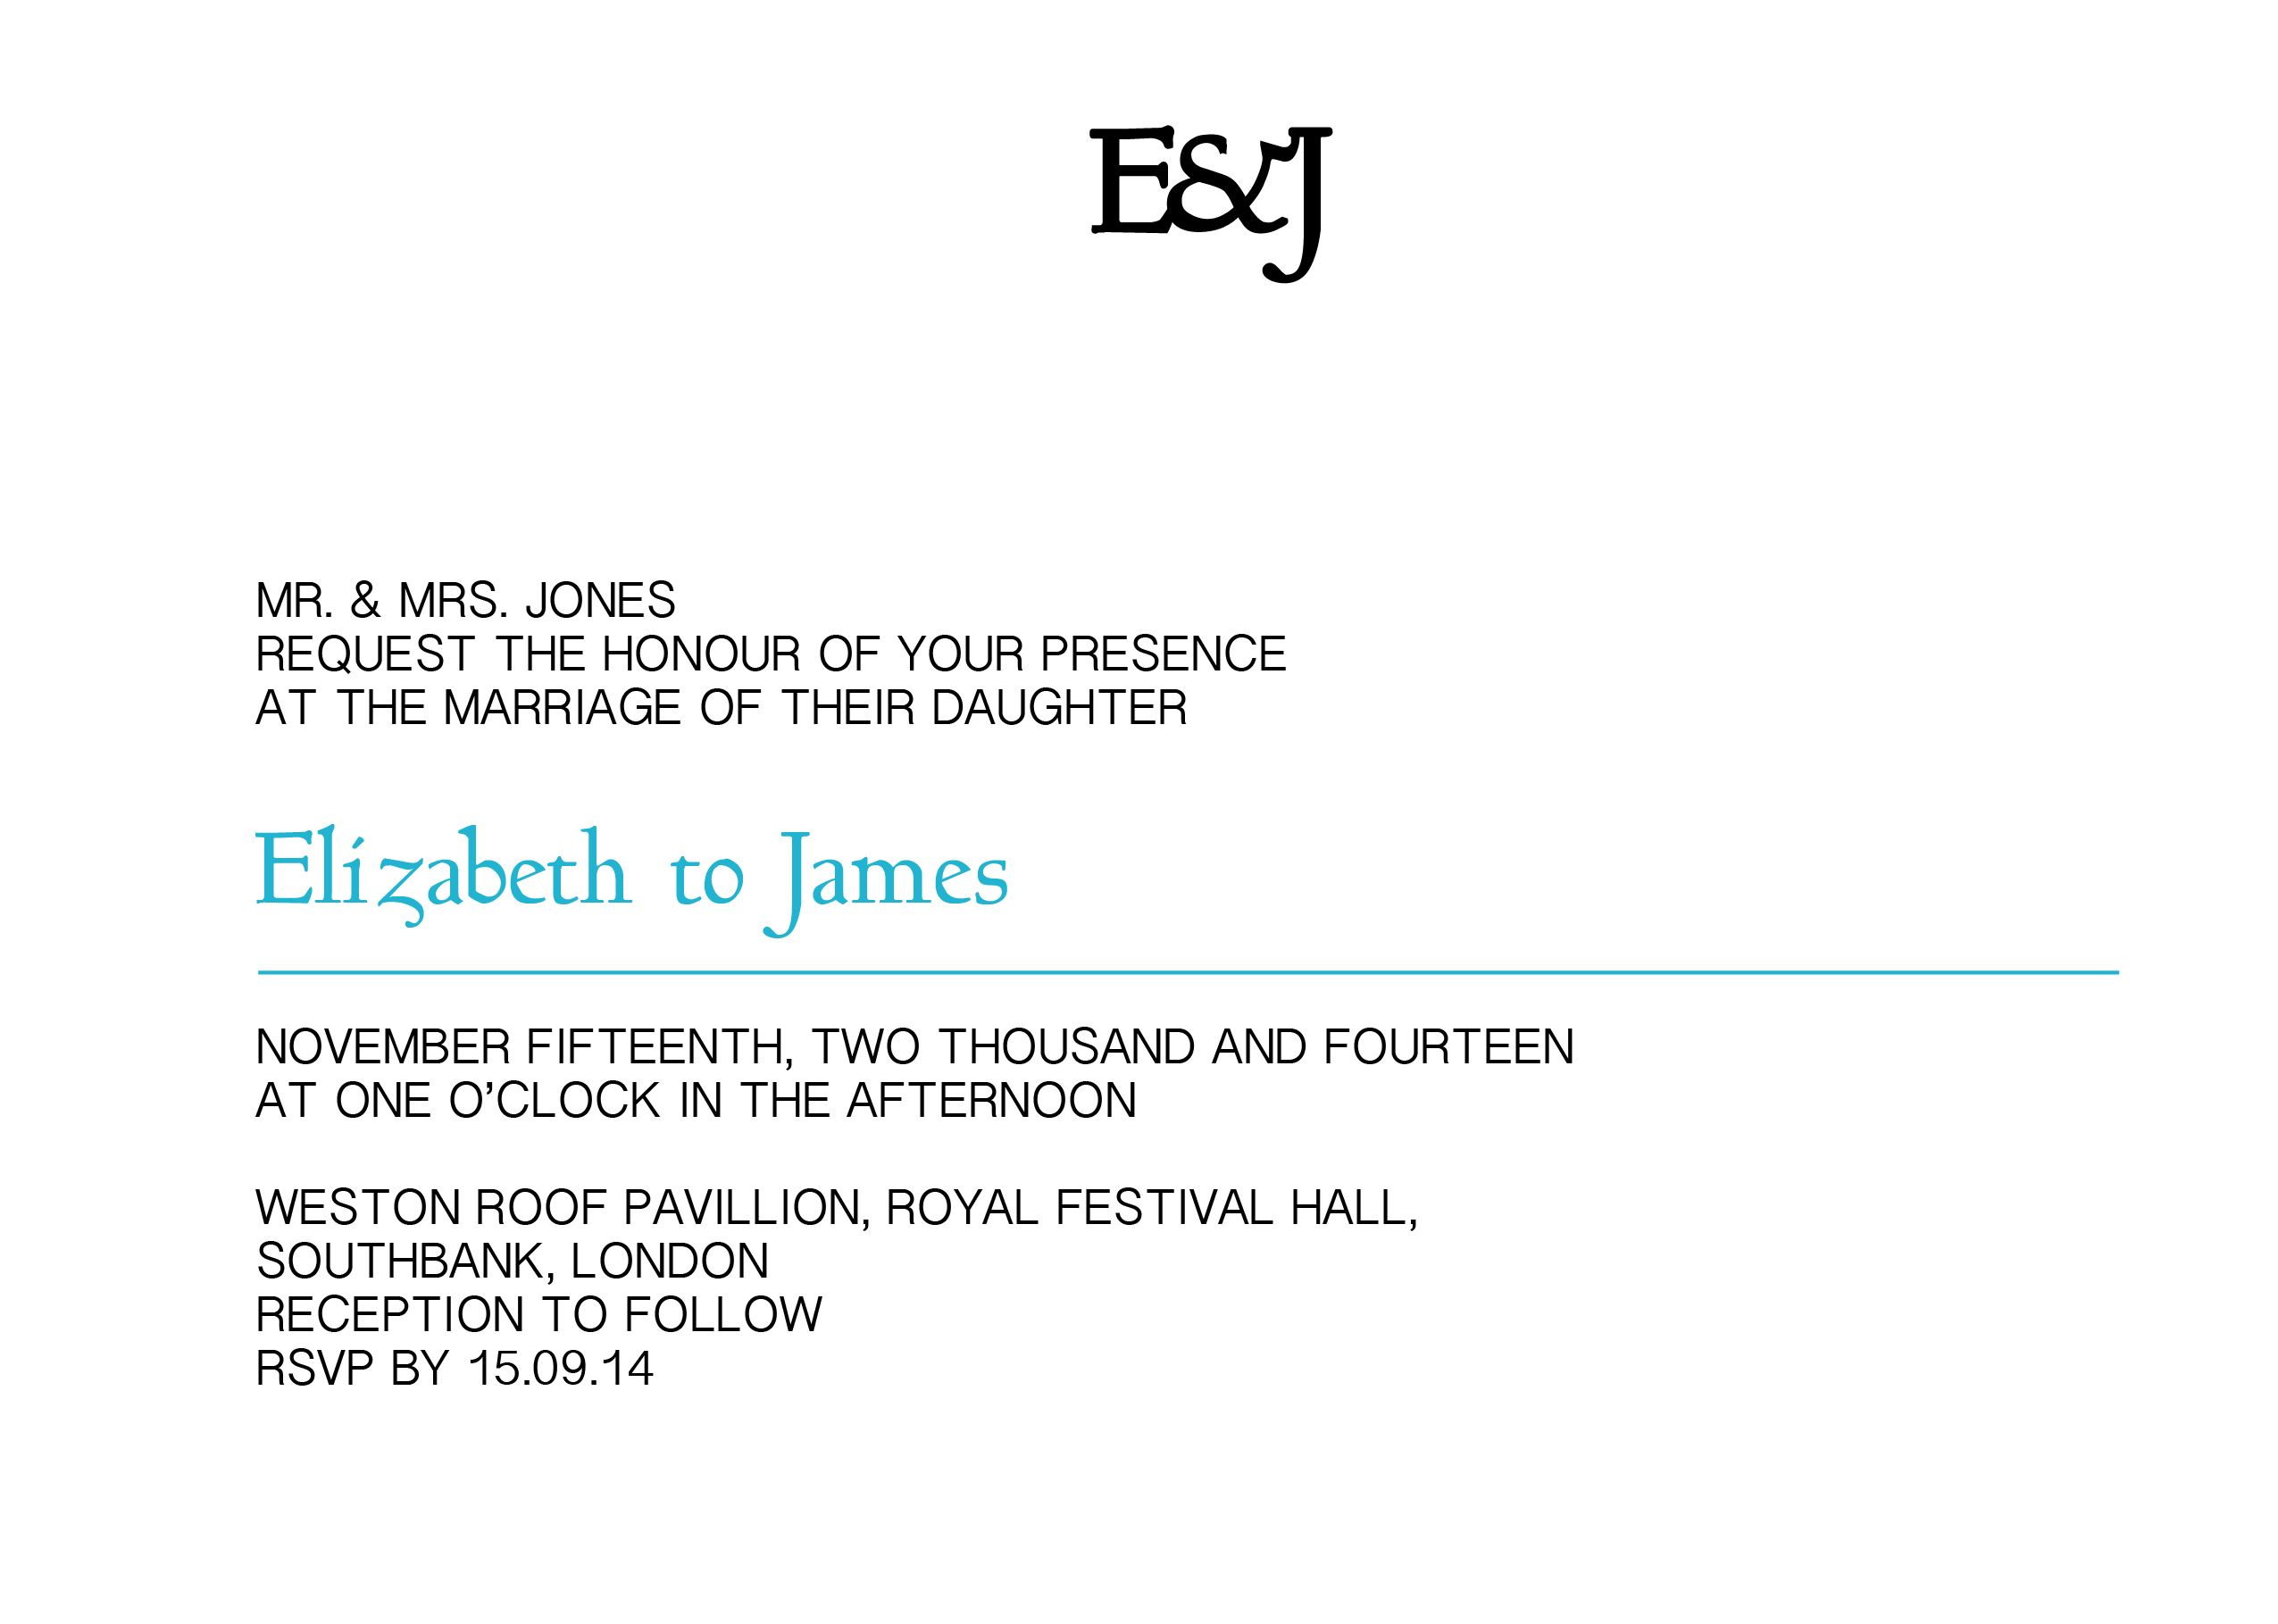 Monogram Classic - Invite - #Wedding Stationery - colours can be amended